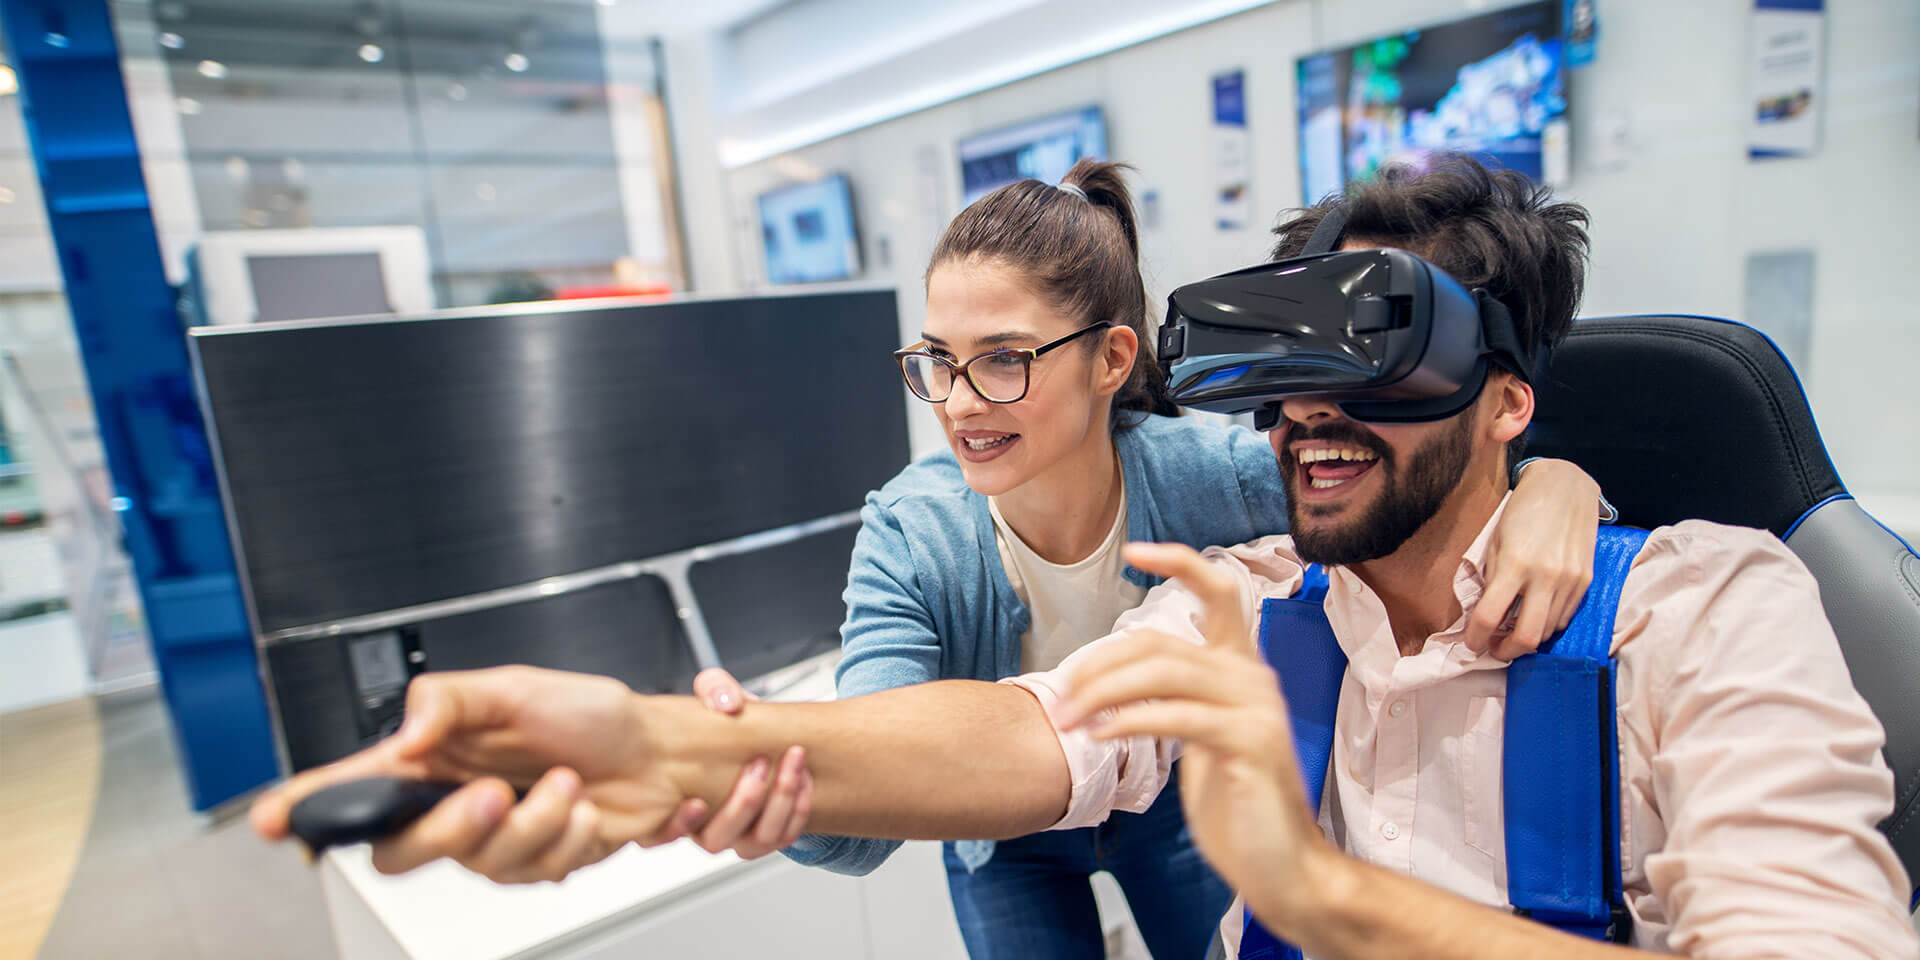 4 ideas to drive engagement in your electronics stores